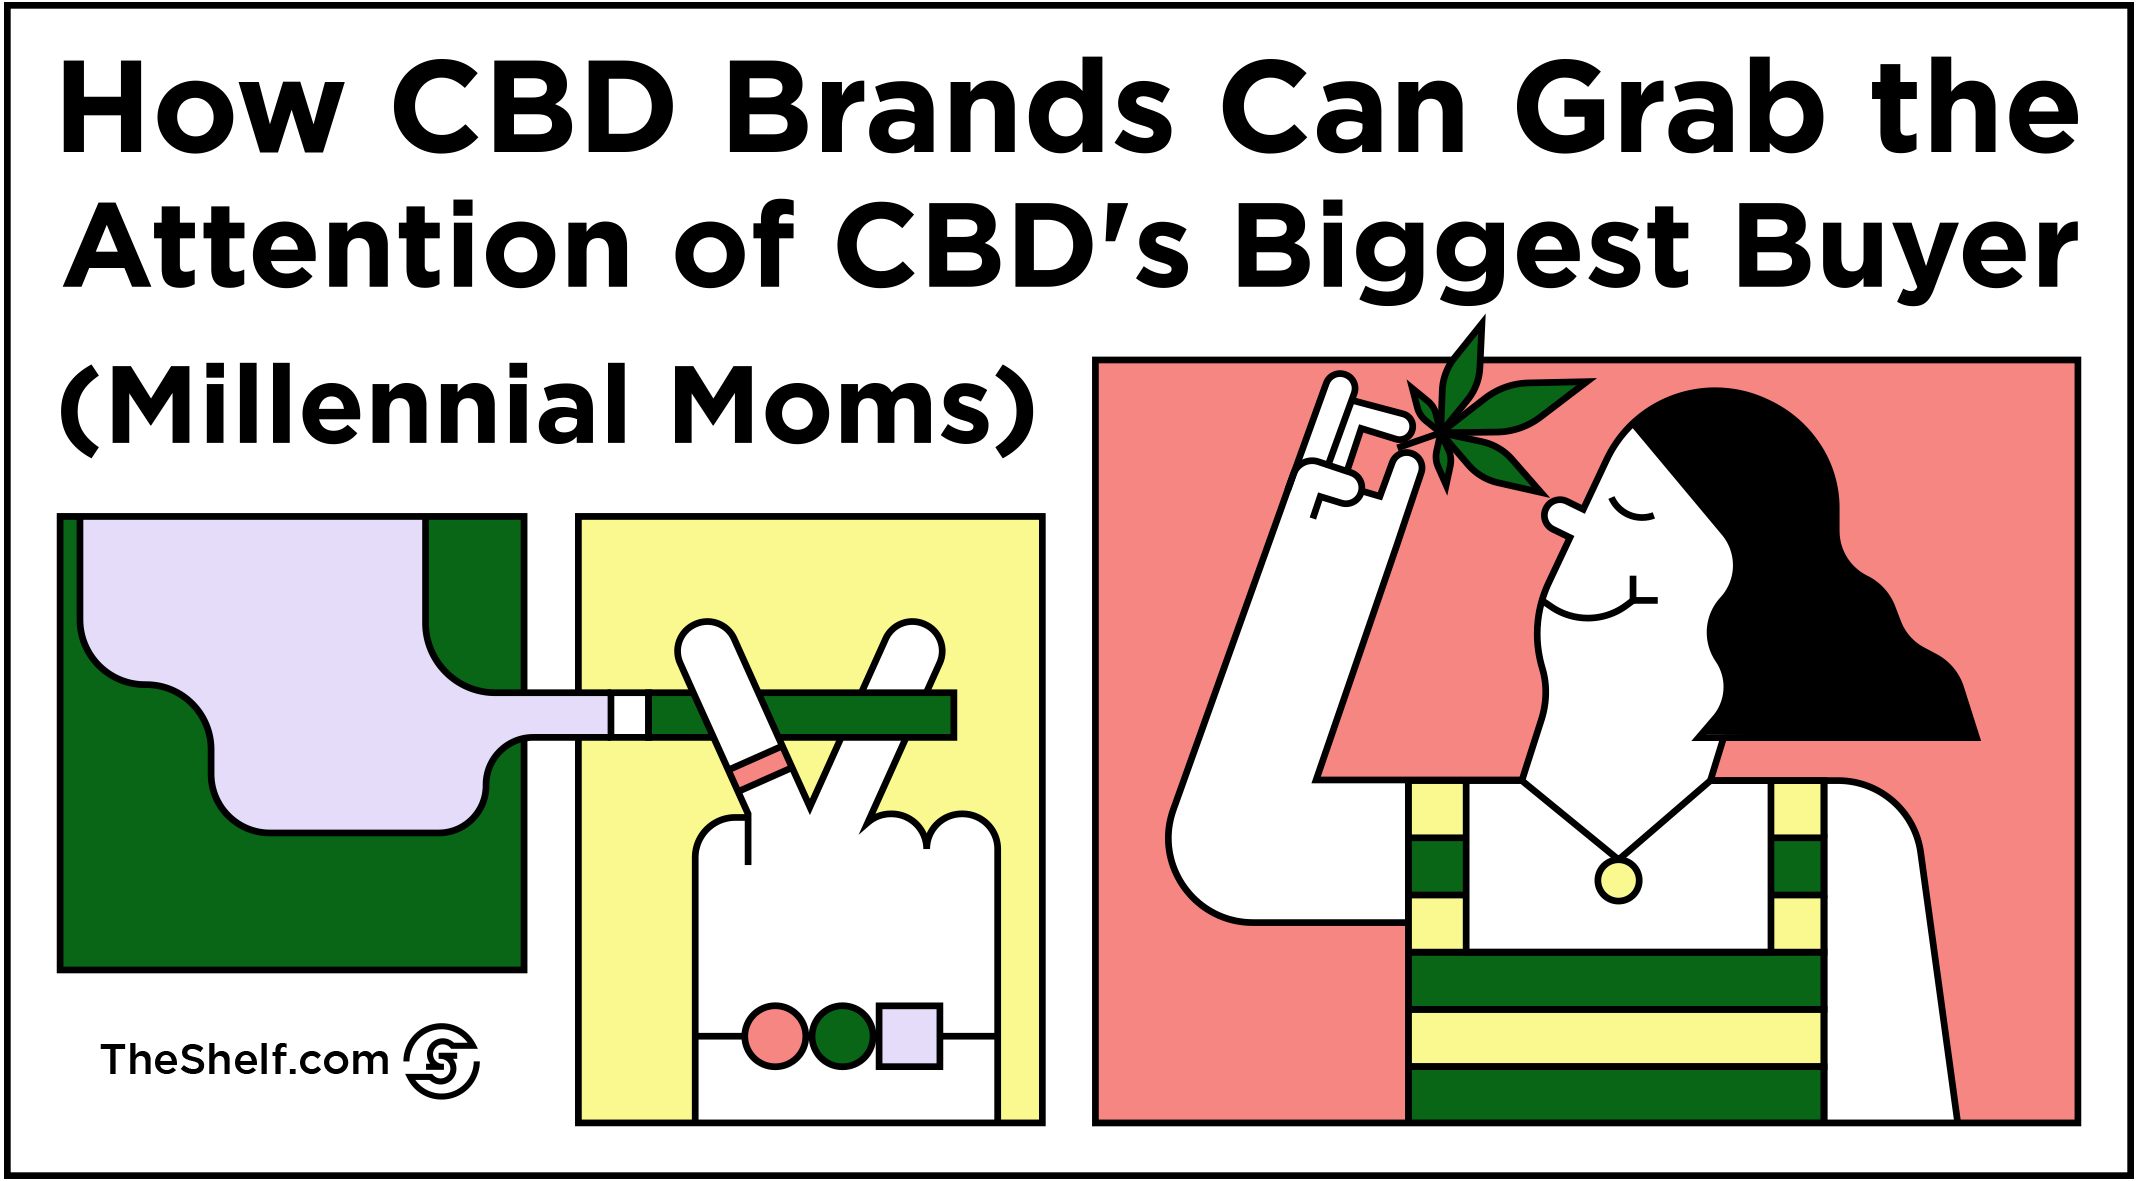 HOW CBD BRANDS CAN GRAB THE ATTENTION OF CBD'S BIGGEST BUYER (MILLENNIAL MOMS)THIS_title.png